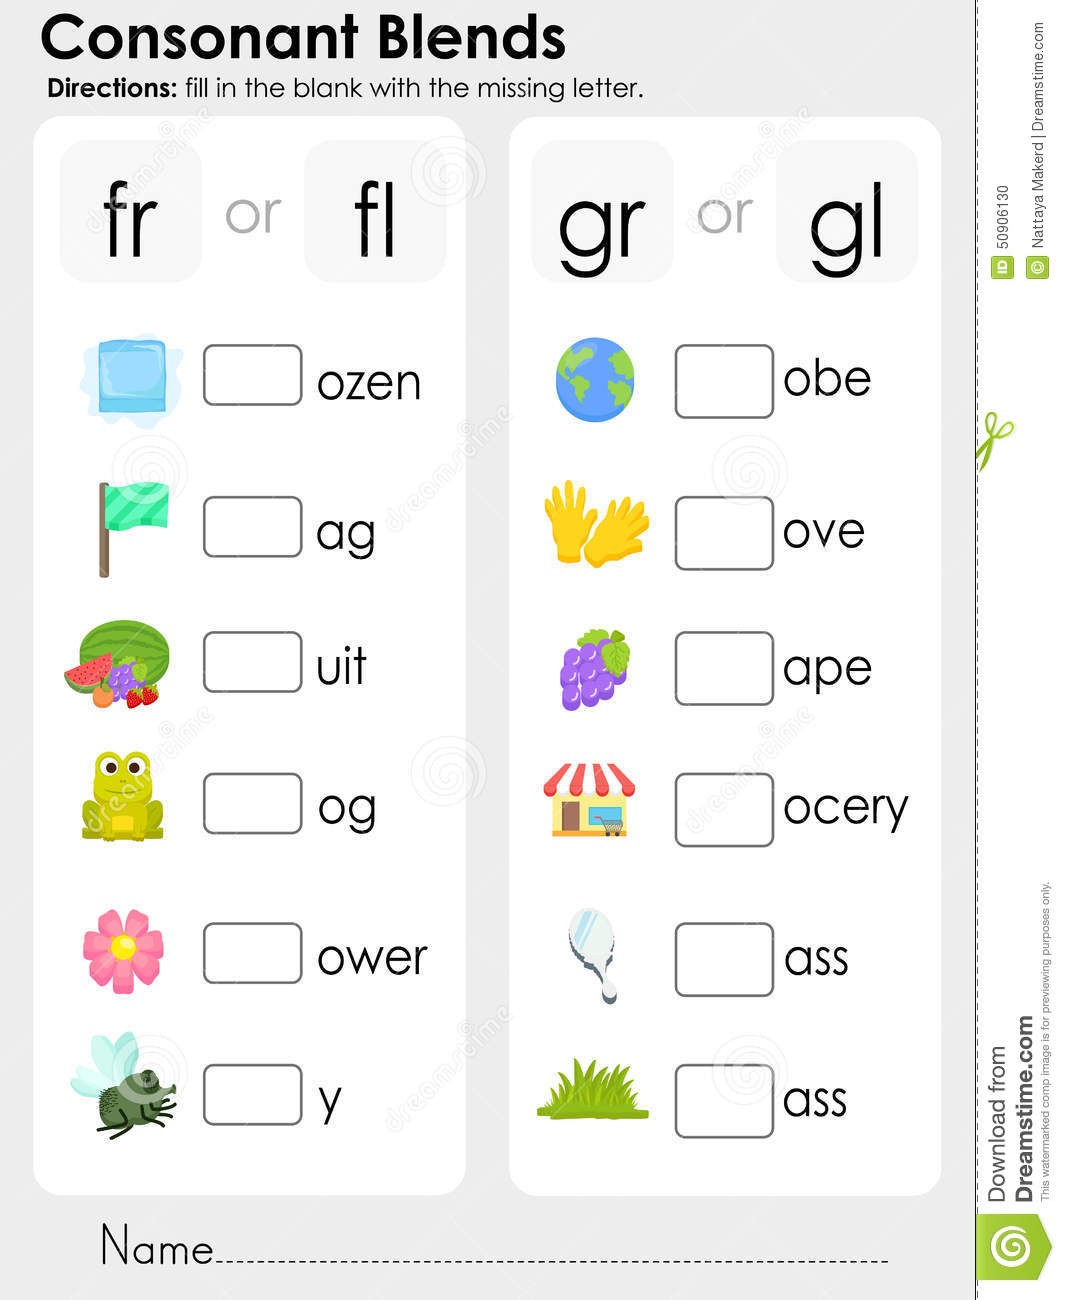 Uncategorized Blends And Digraphs Worksheets consonant blends worksheets free library download and beginning an adjective the bubble sight